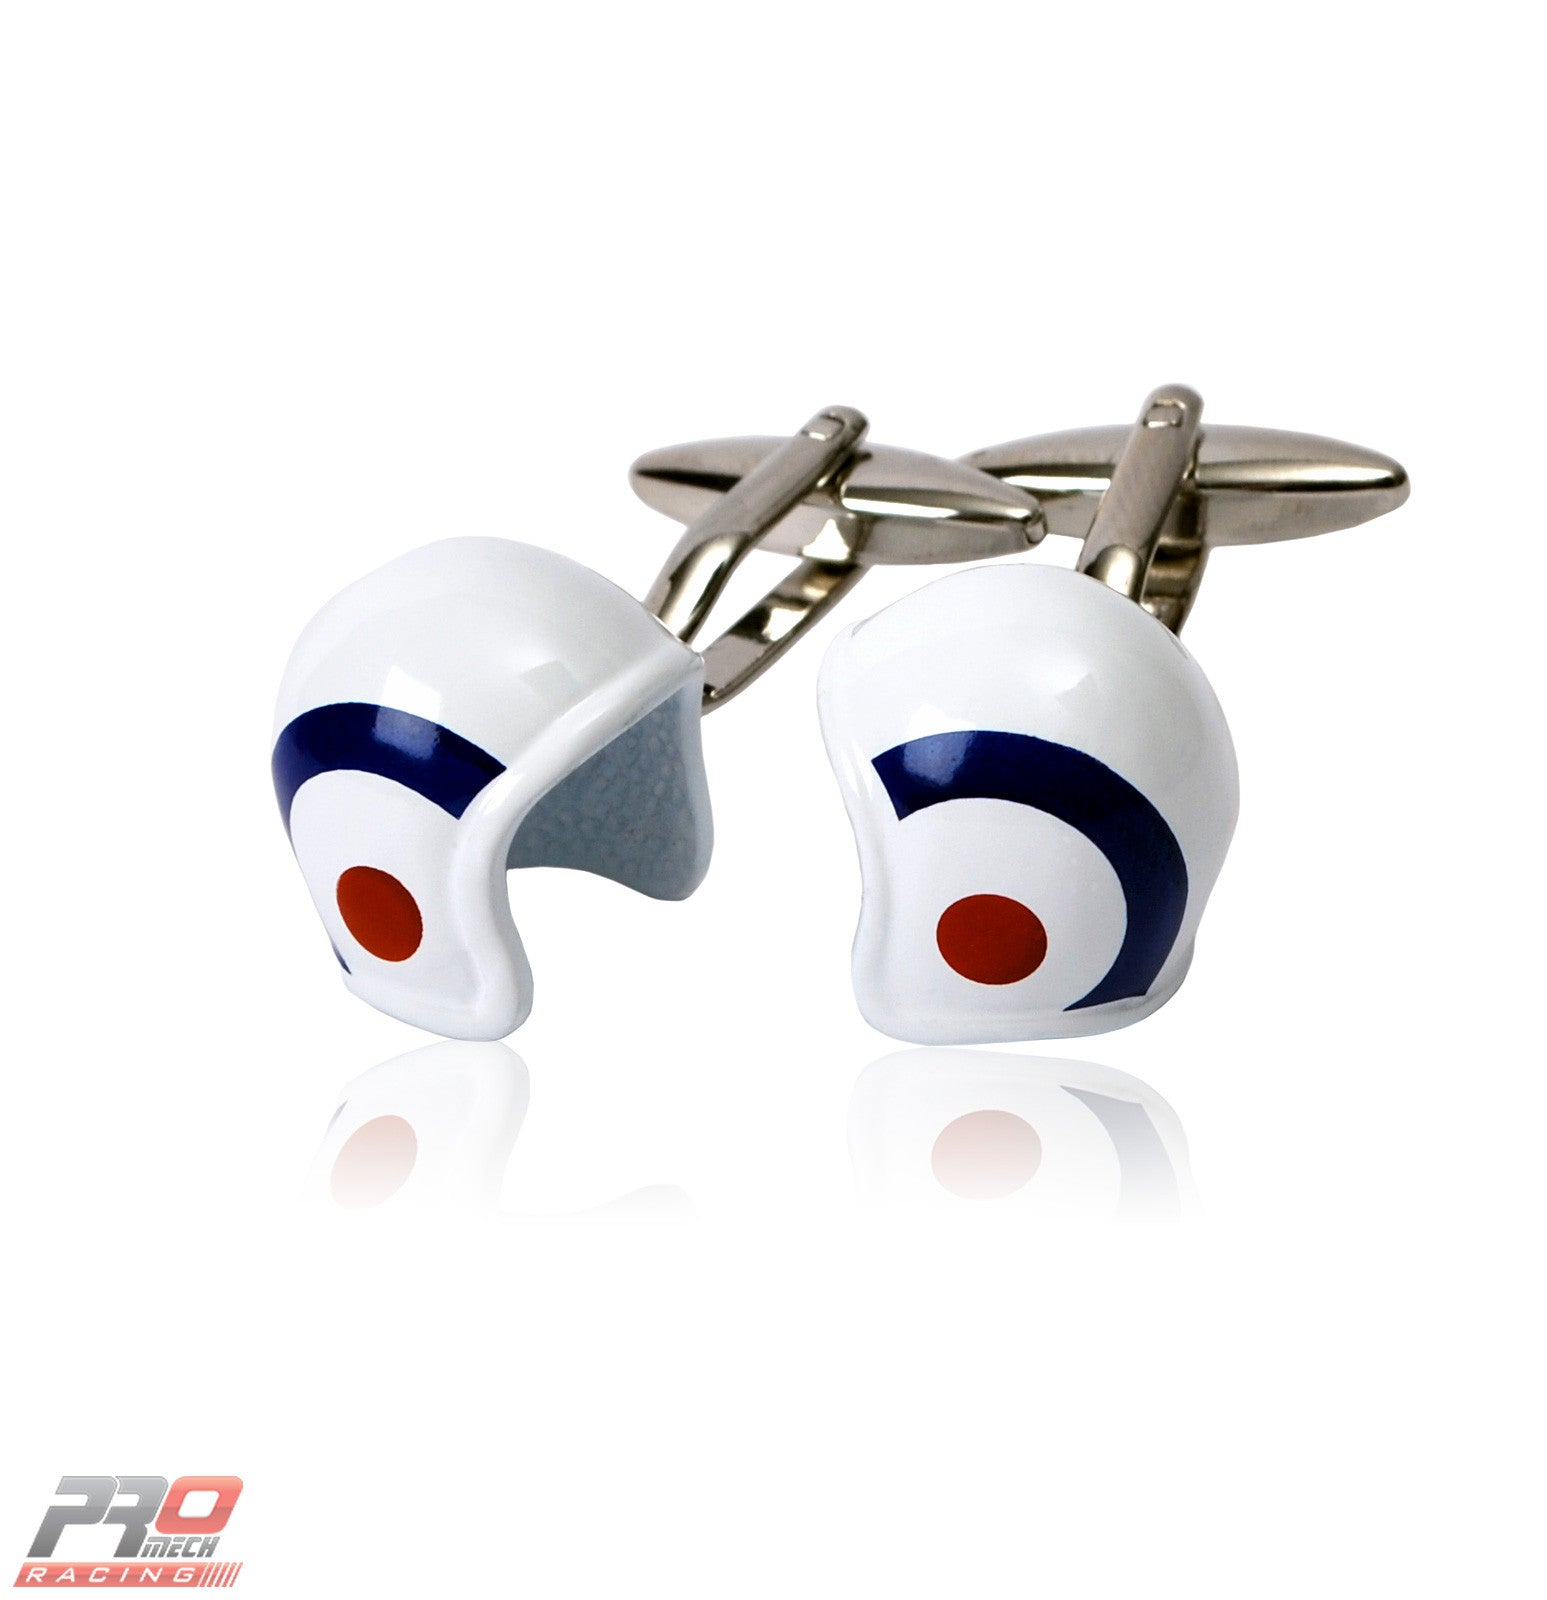 ProMech Racing Helmet Cufflinks Giftbox Set with Racing Sound Box